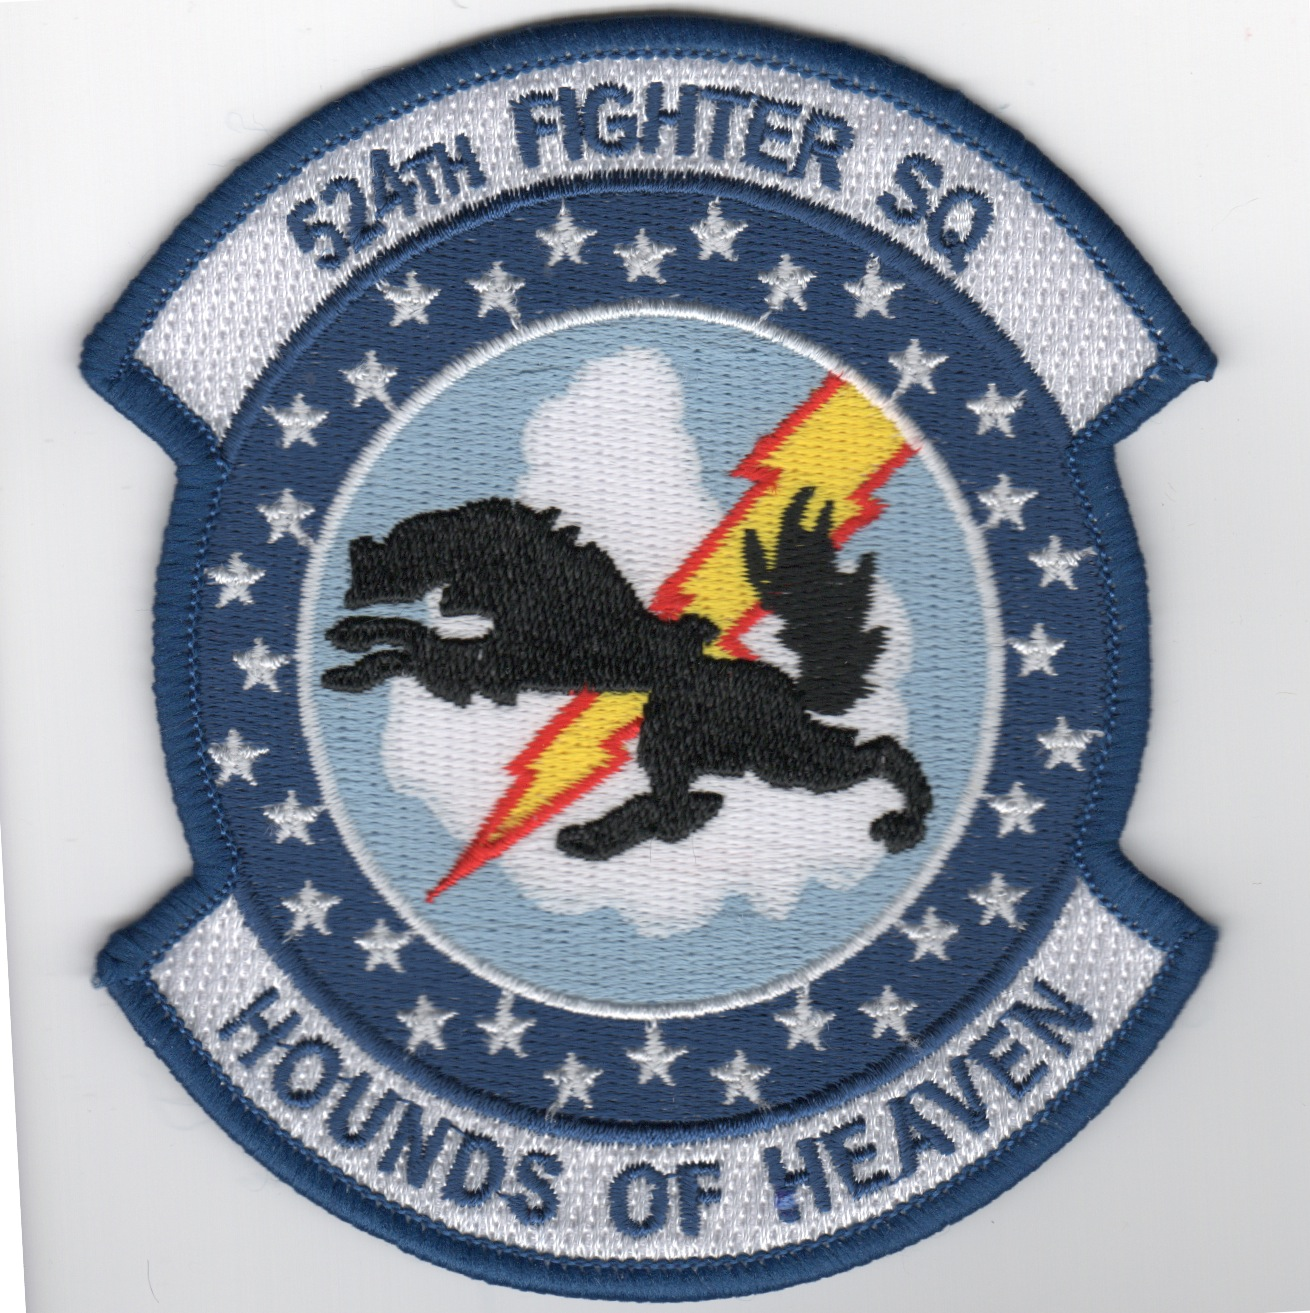 524FS 'HoH' Patch (Large/Blue Border)